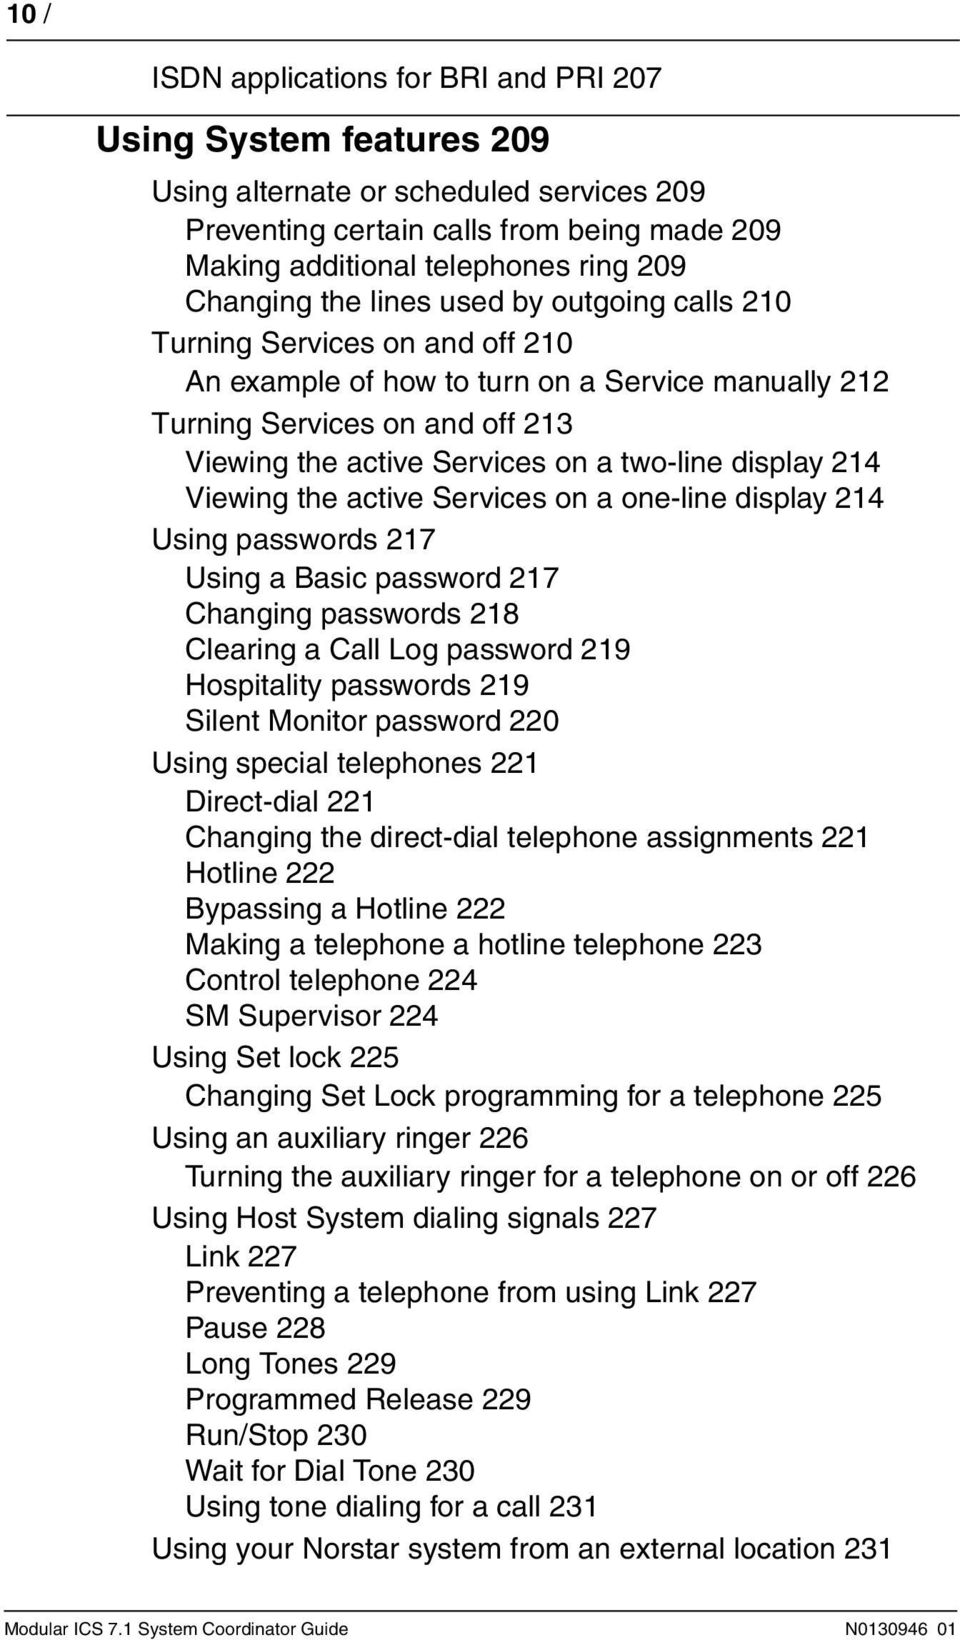 two-line display 214 Viewing the active Services on a one-line display 214 Using passwords 217 Using a Basic password 217 Changing passwords 218 Clearing a Call Log password 219 Hospitality passwords